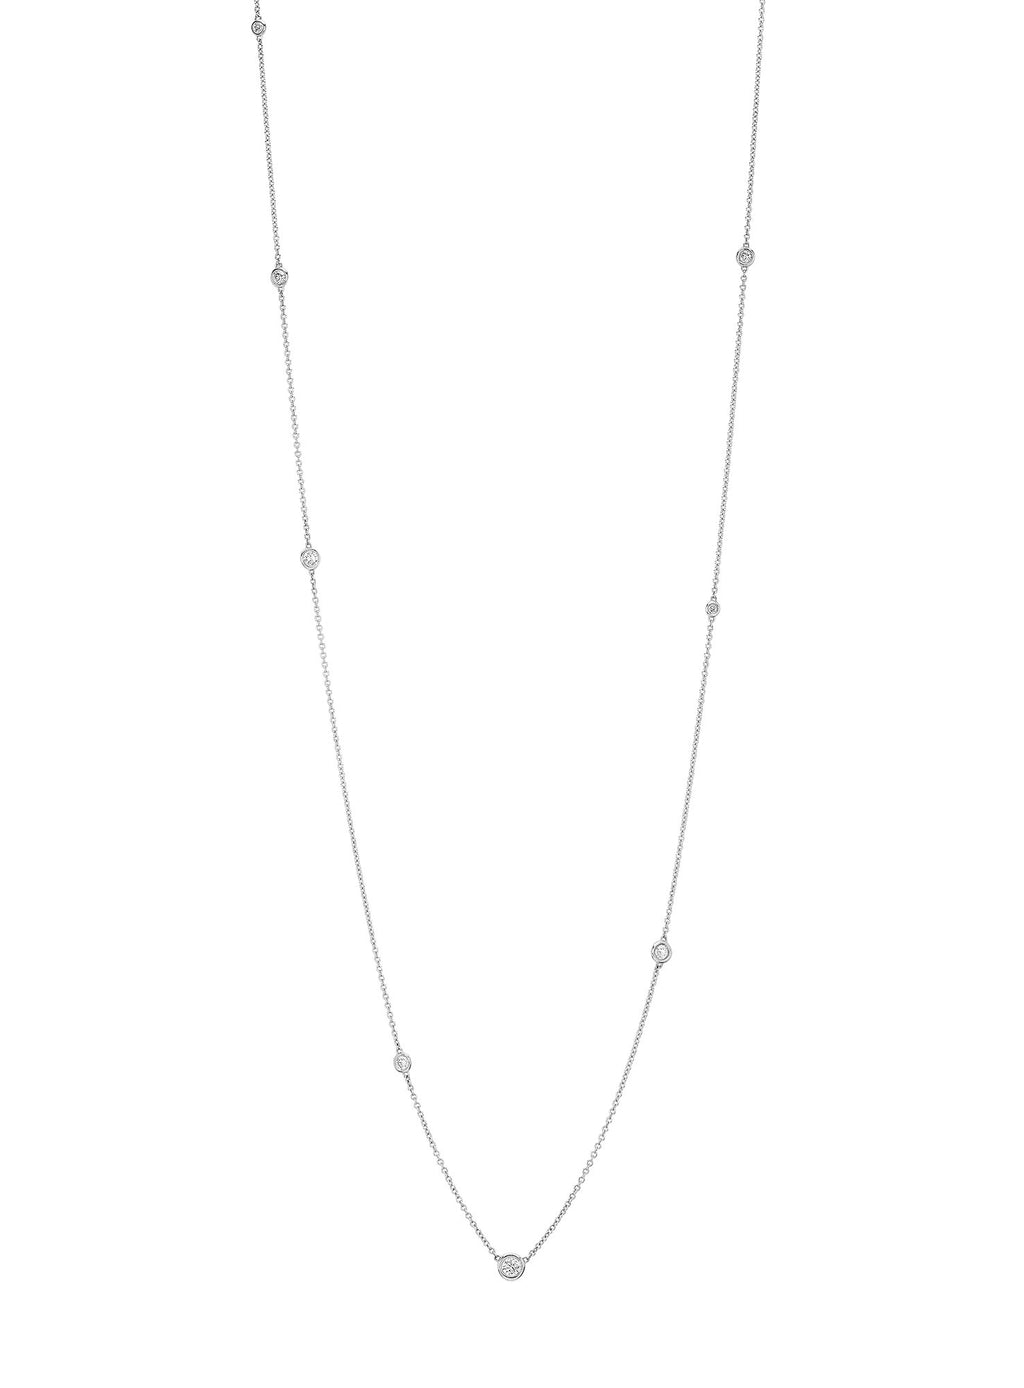 Diamond Orbit Bezel Long Strand Necklace White Gold